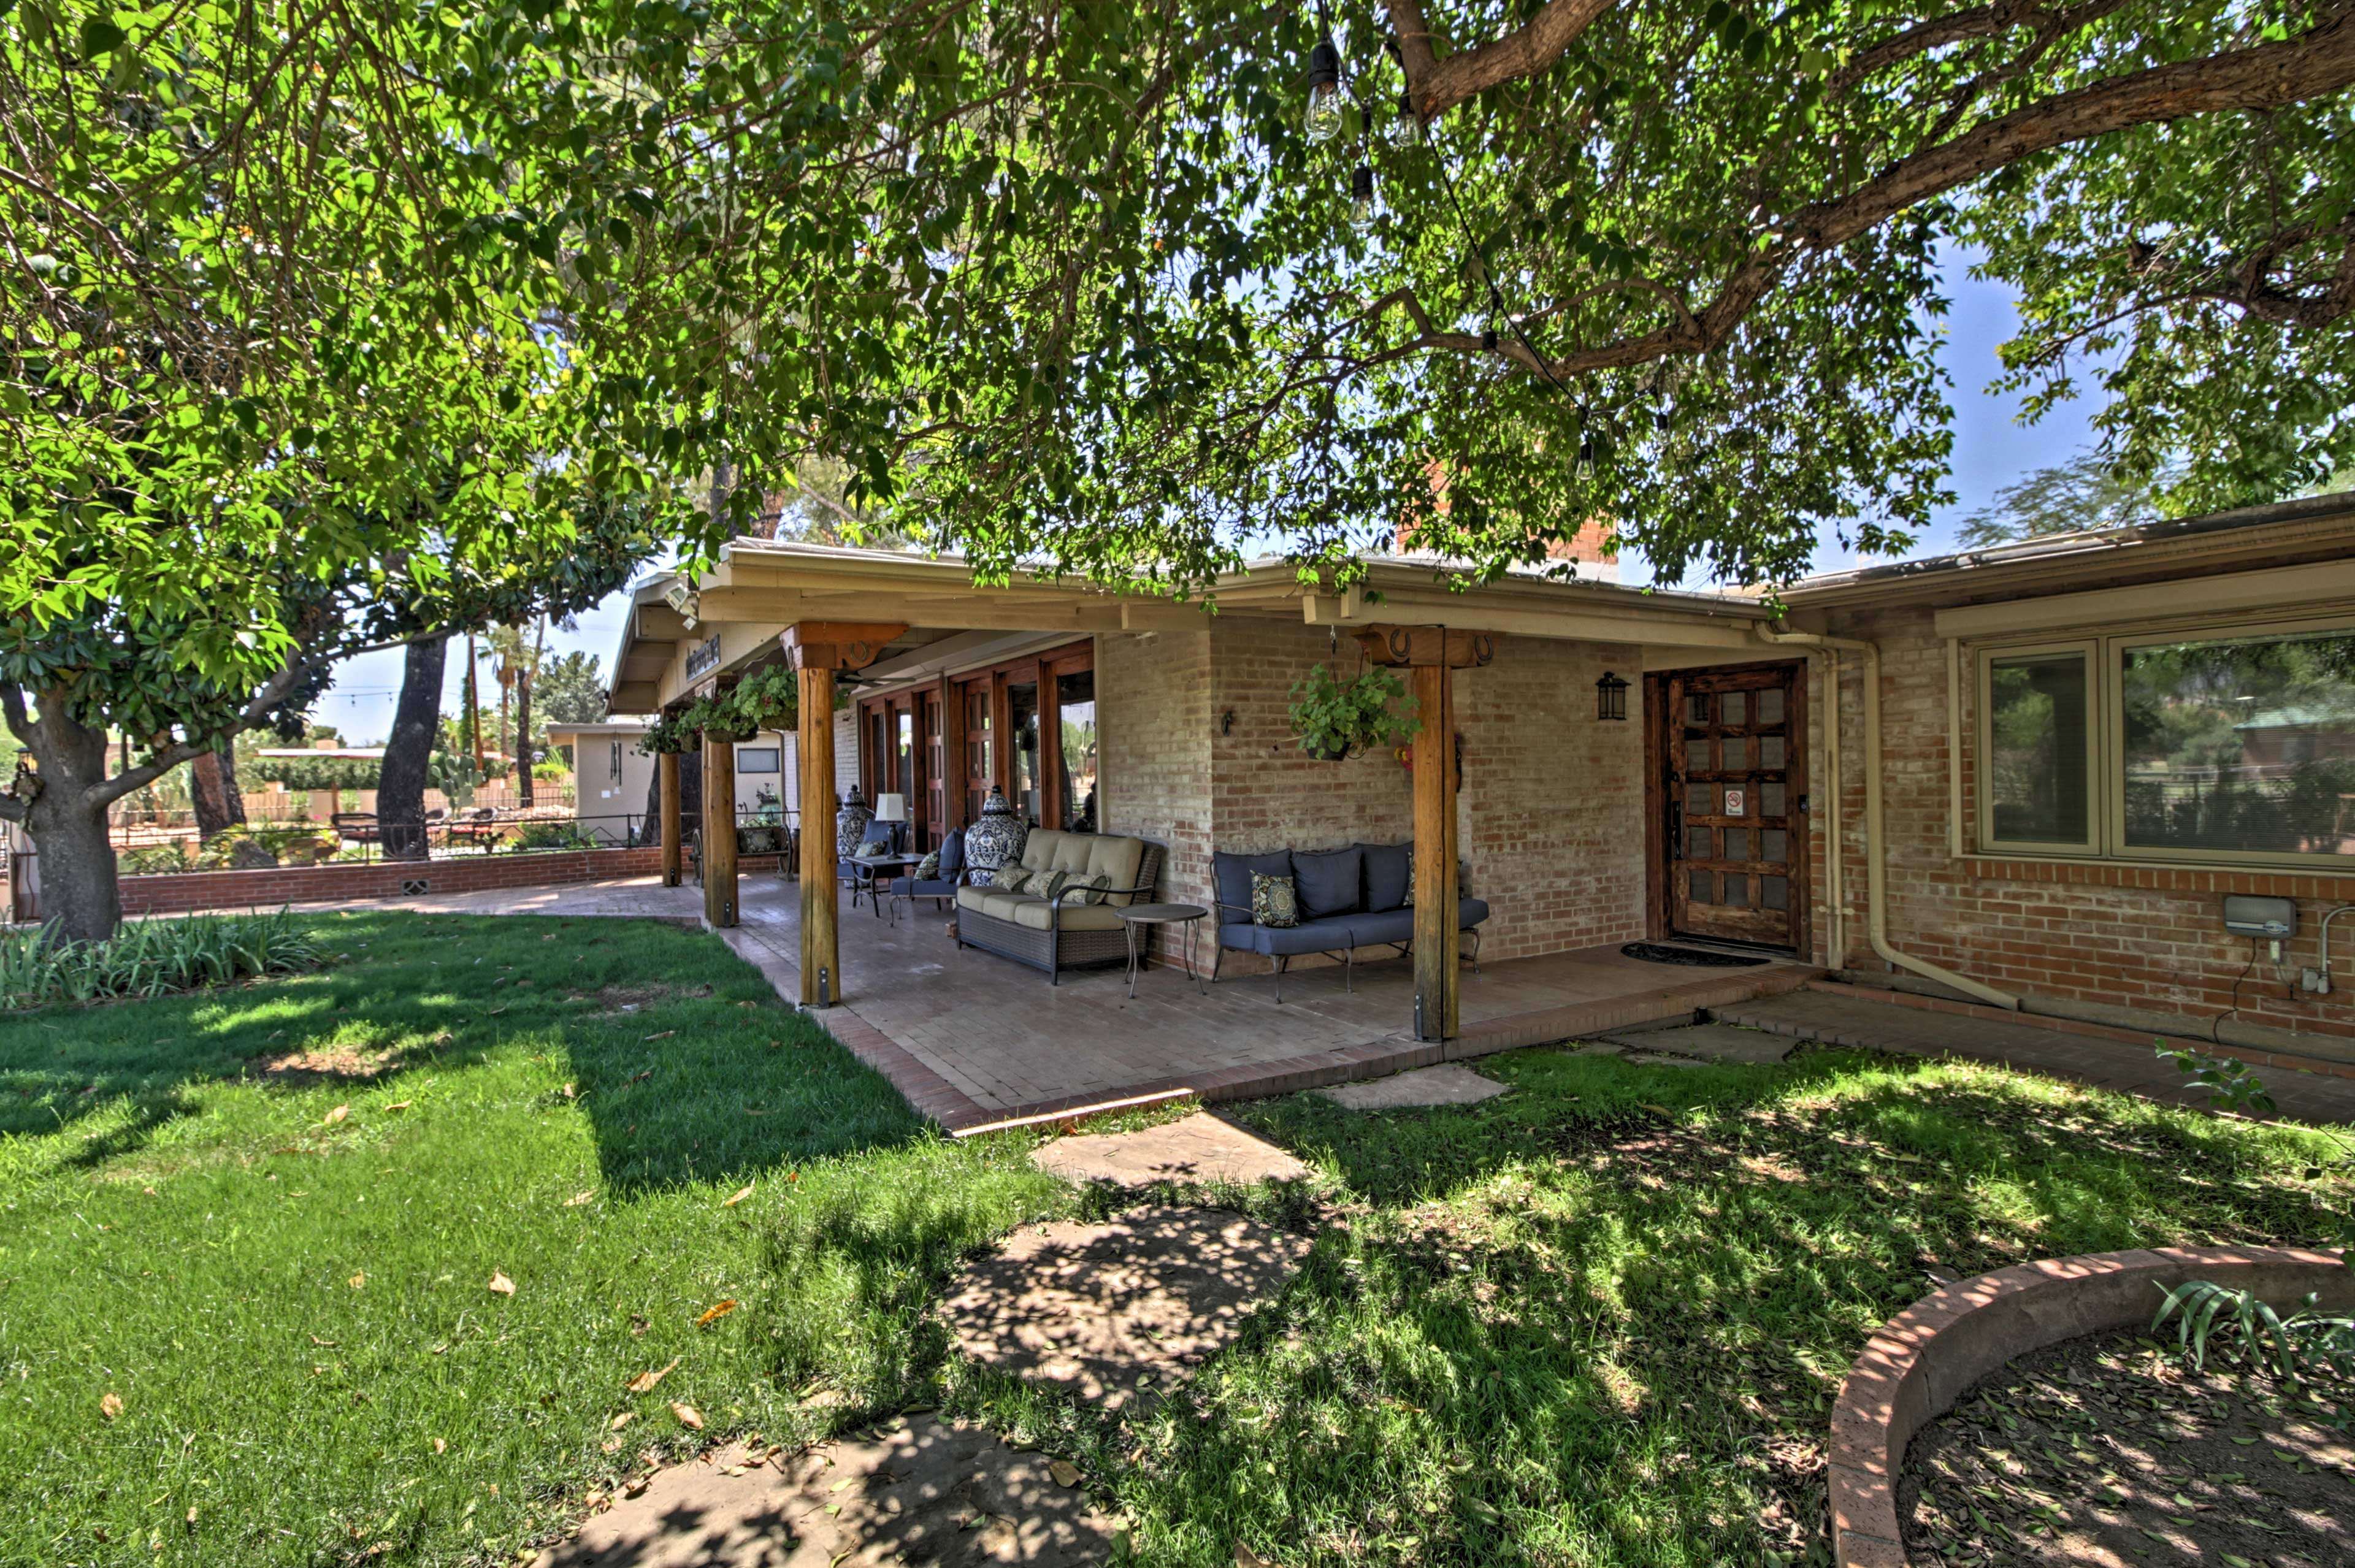 Explore nature's beauty from this 5-bed, 4-bath vacation rental home in Tucson!